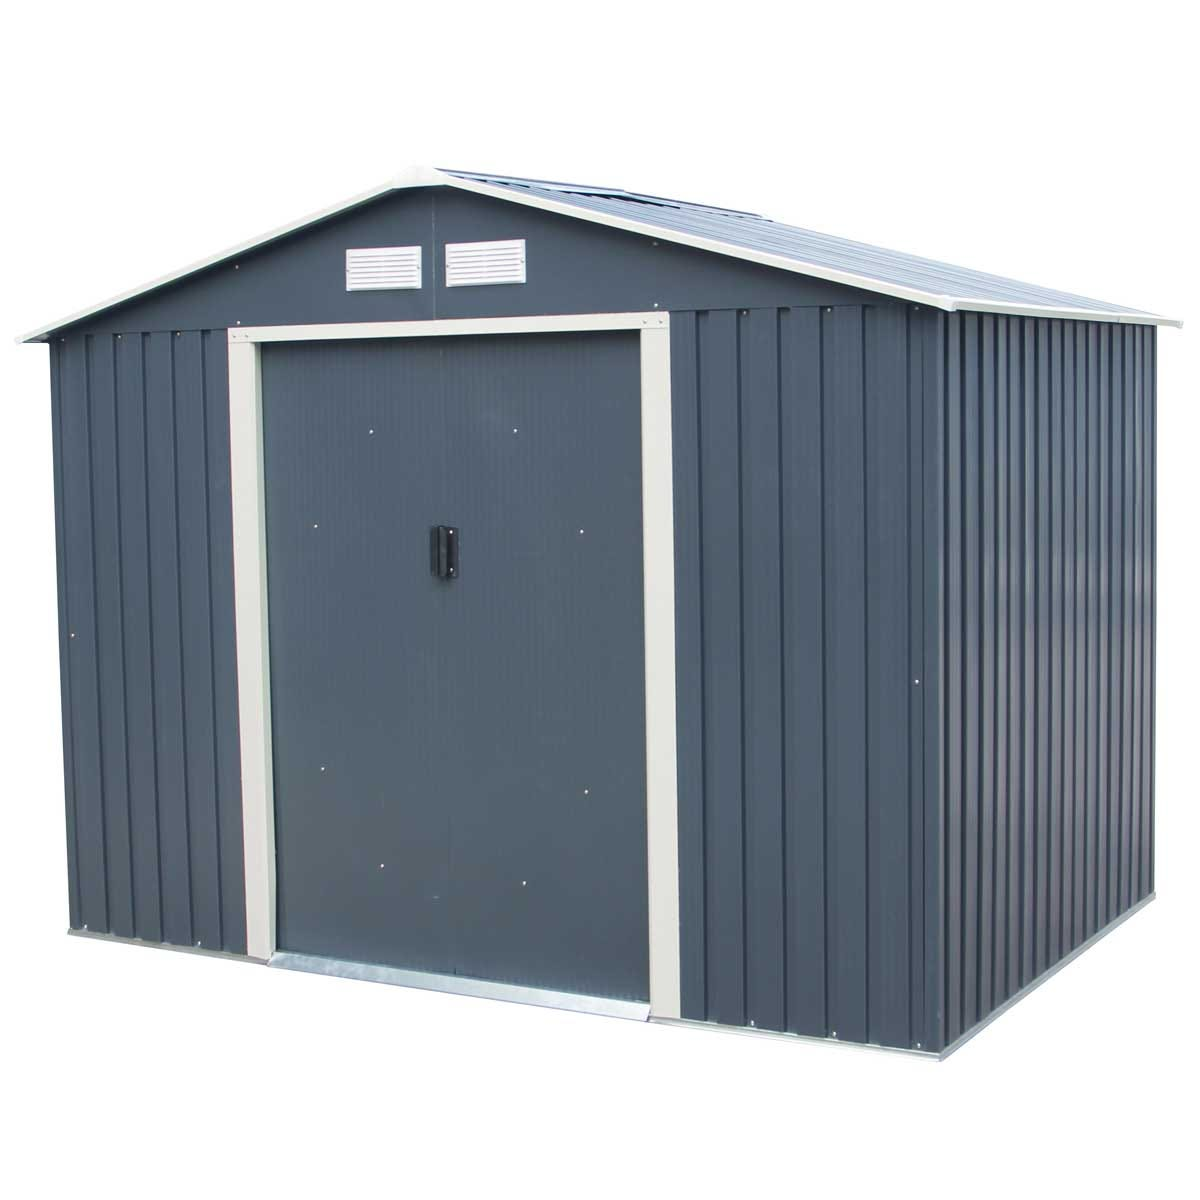 Charles Bentley 8' x 6' Metal Shed with Floor Frame - Grey